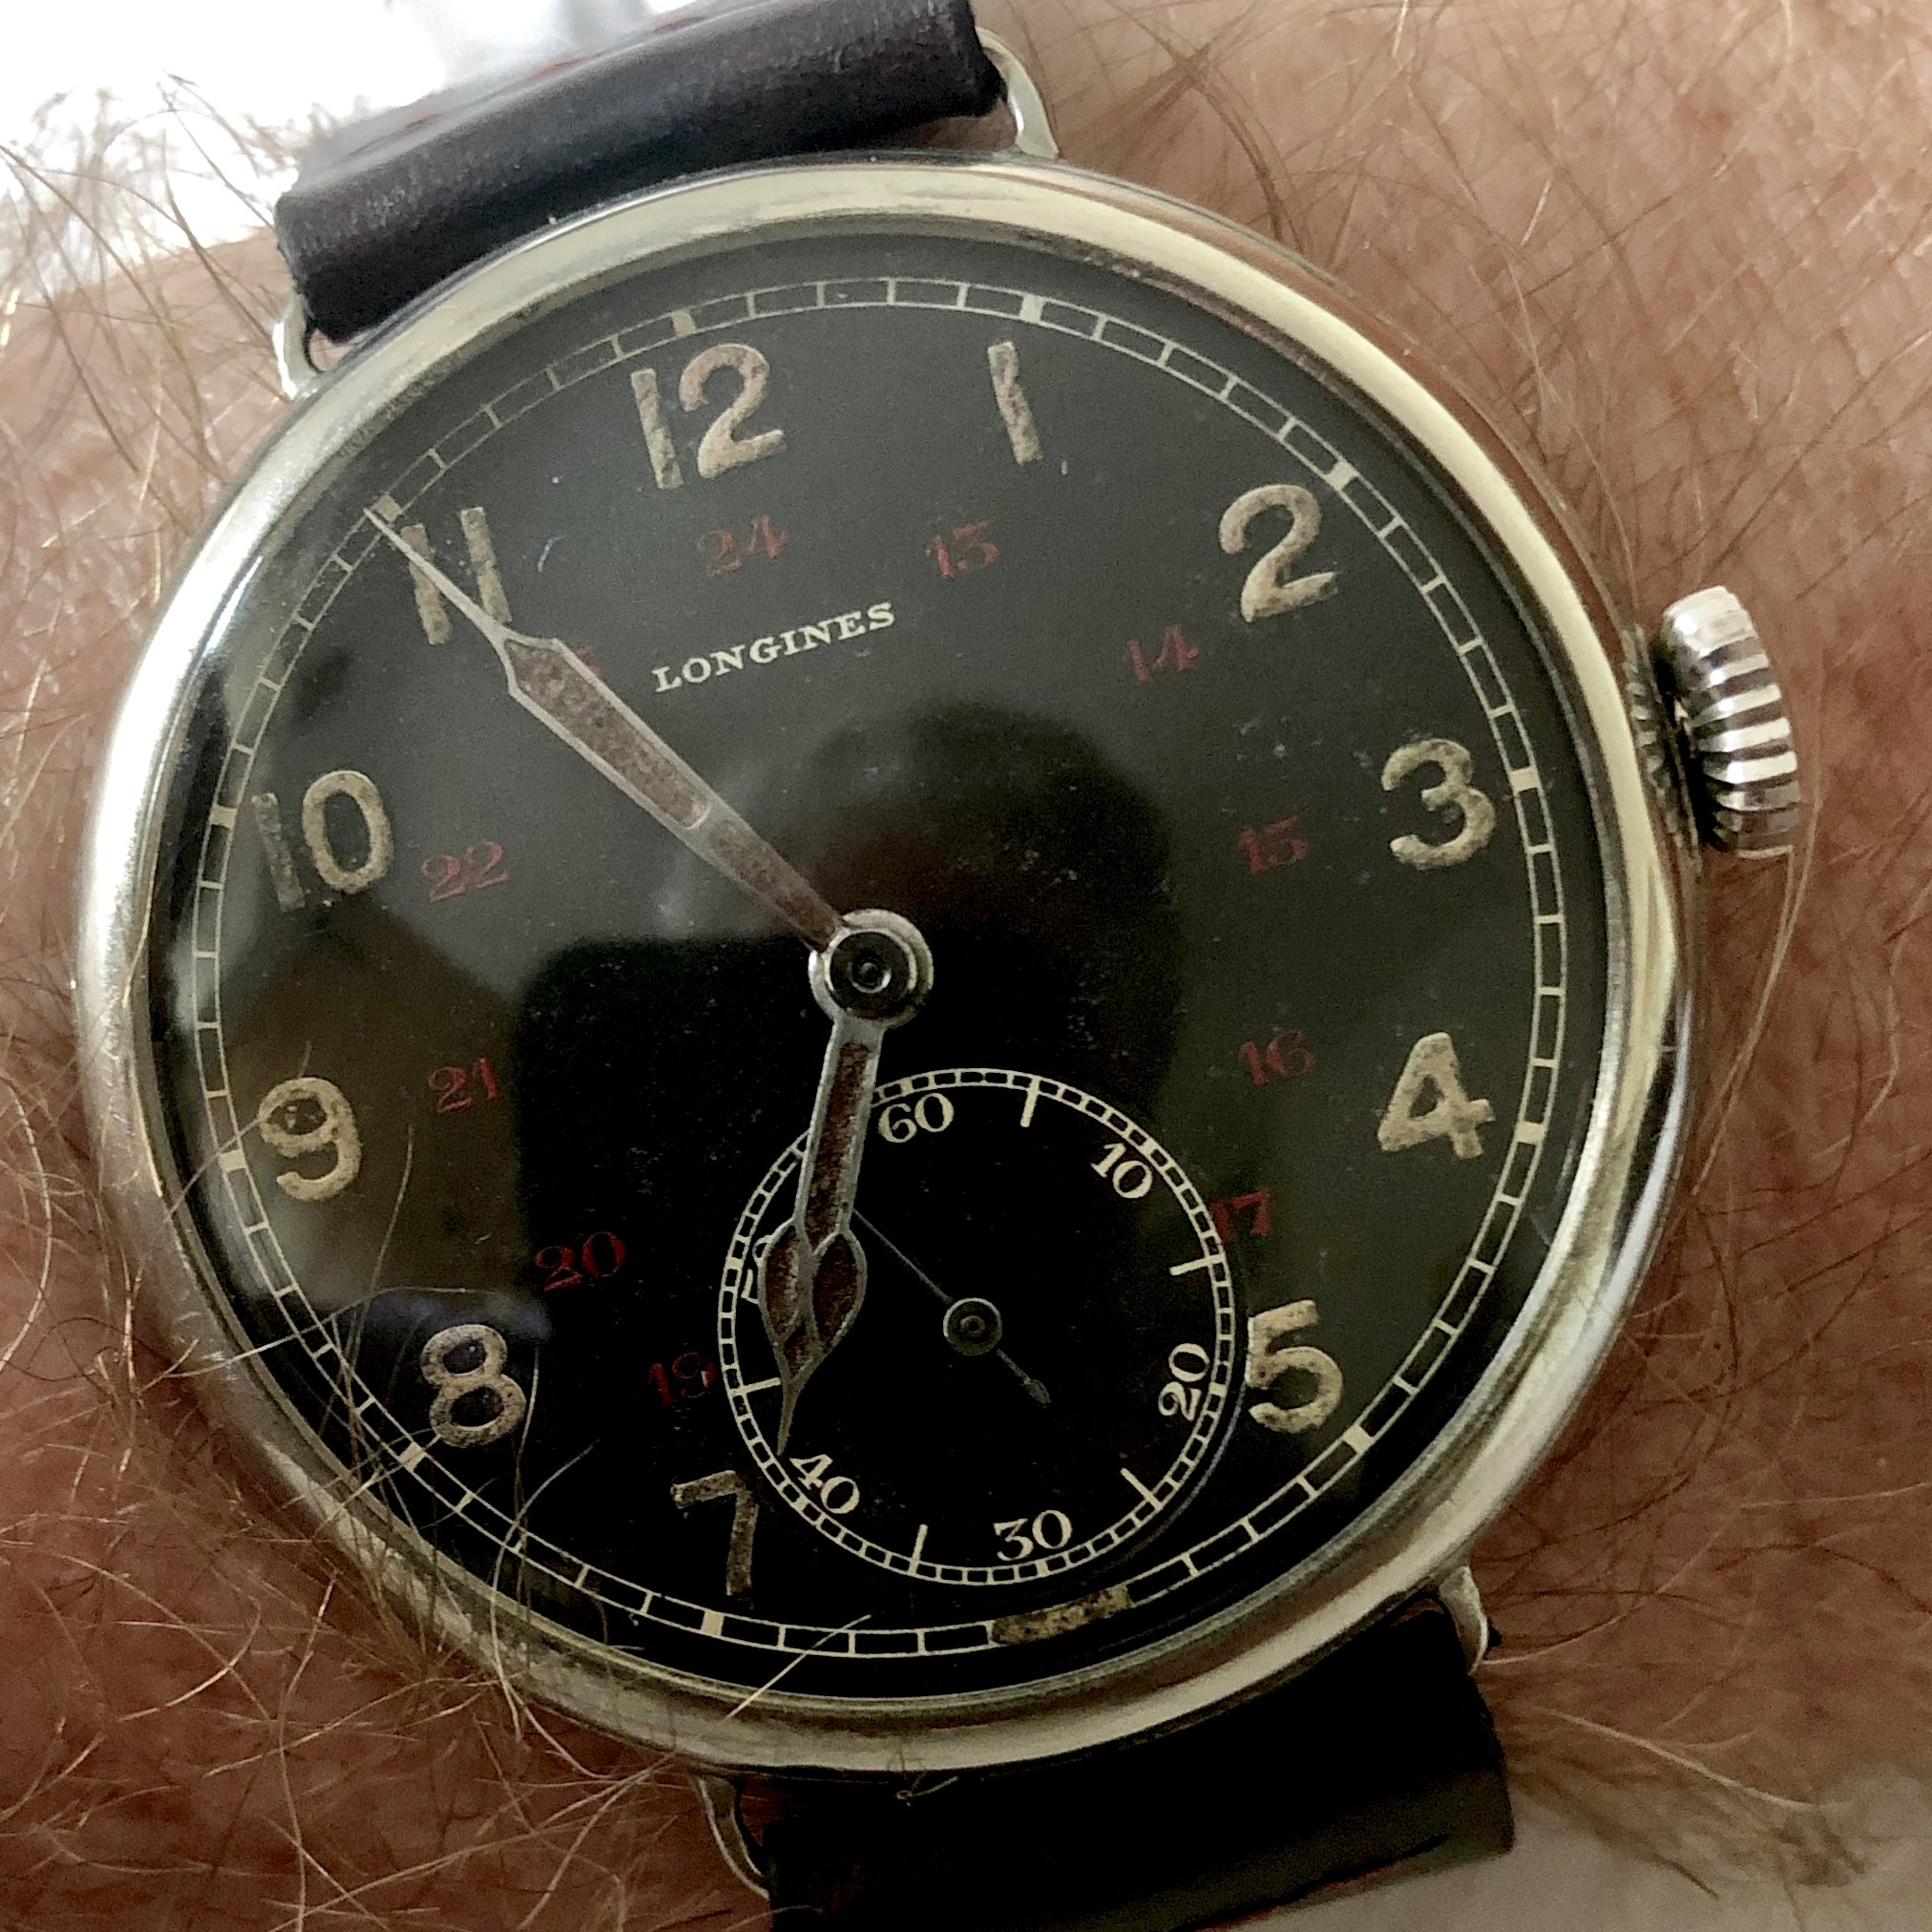 Longines 17.26 Pilot's Watch - This rare Longines 17.26 caliber pilot's watch was delivered to Longine's agent in Poland, Zipper & Co., on July 8, 1933. It is the earliest 17.26 pilot's watch recorded. In 1933, Poland had one of the largest air forces in the world and was significant deterrent to the fascist regimes that were springing up around it in the mid-1930s. After Germany invaded Poland near the beginning of WW2, some Polish Air Force pilots – including the original owner of this timepiece – made their way to the UK and flew for the RAF.